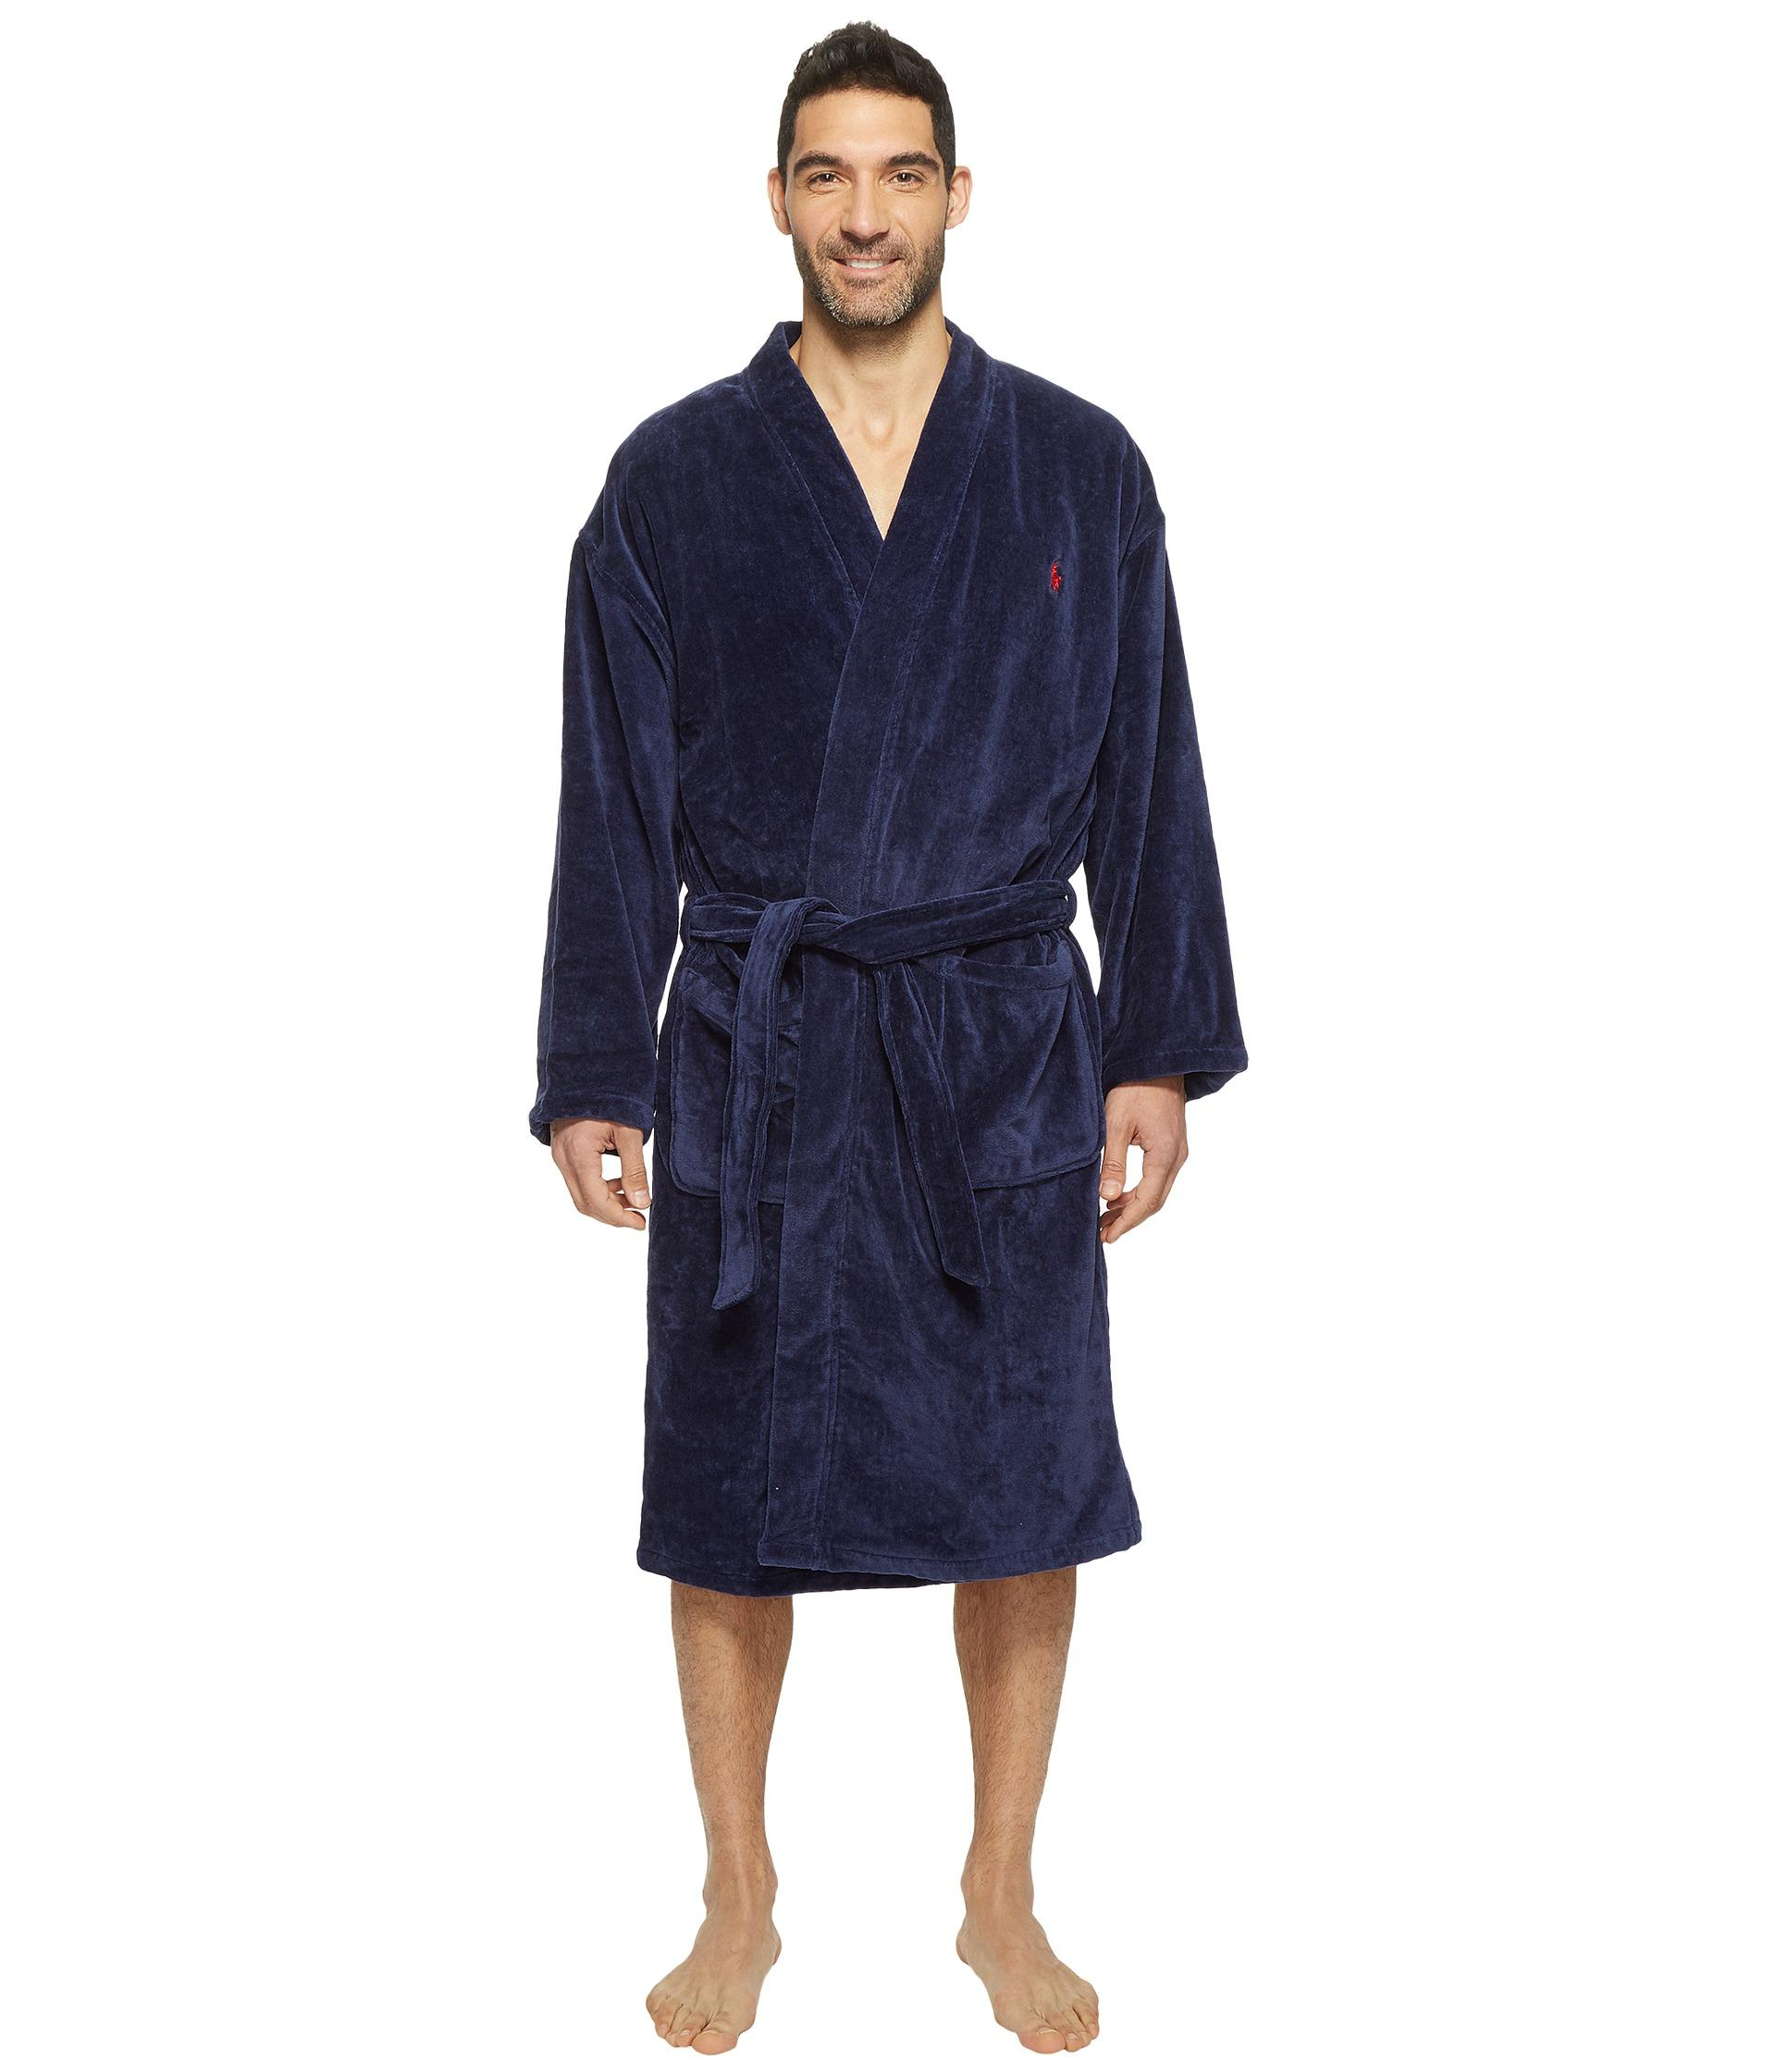 polo ralph lauren velour kimono robe in blue for men lyst. Black Bedroom Furniture Sets. Home Design Ideas